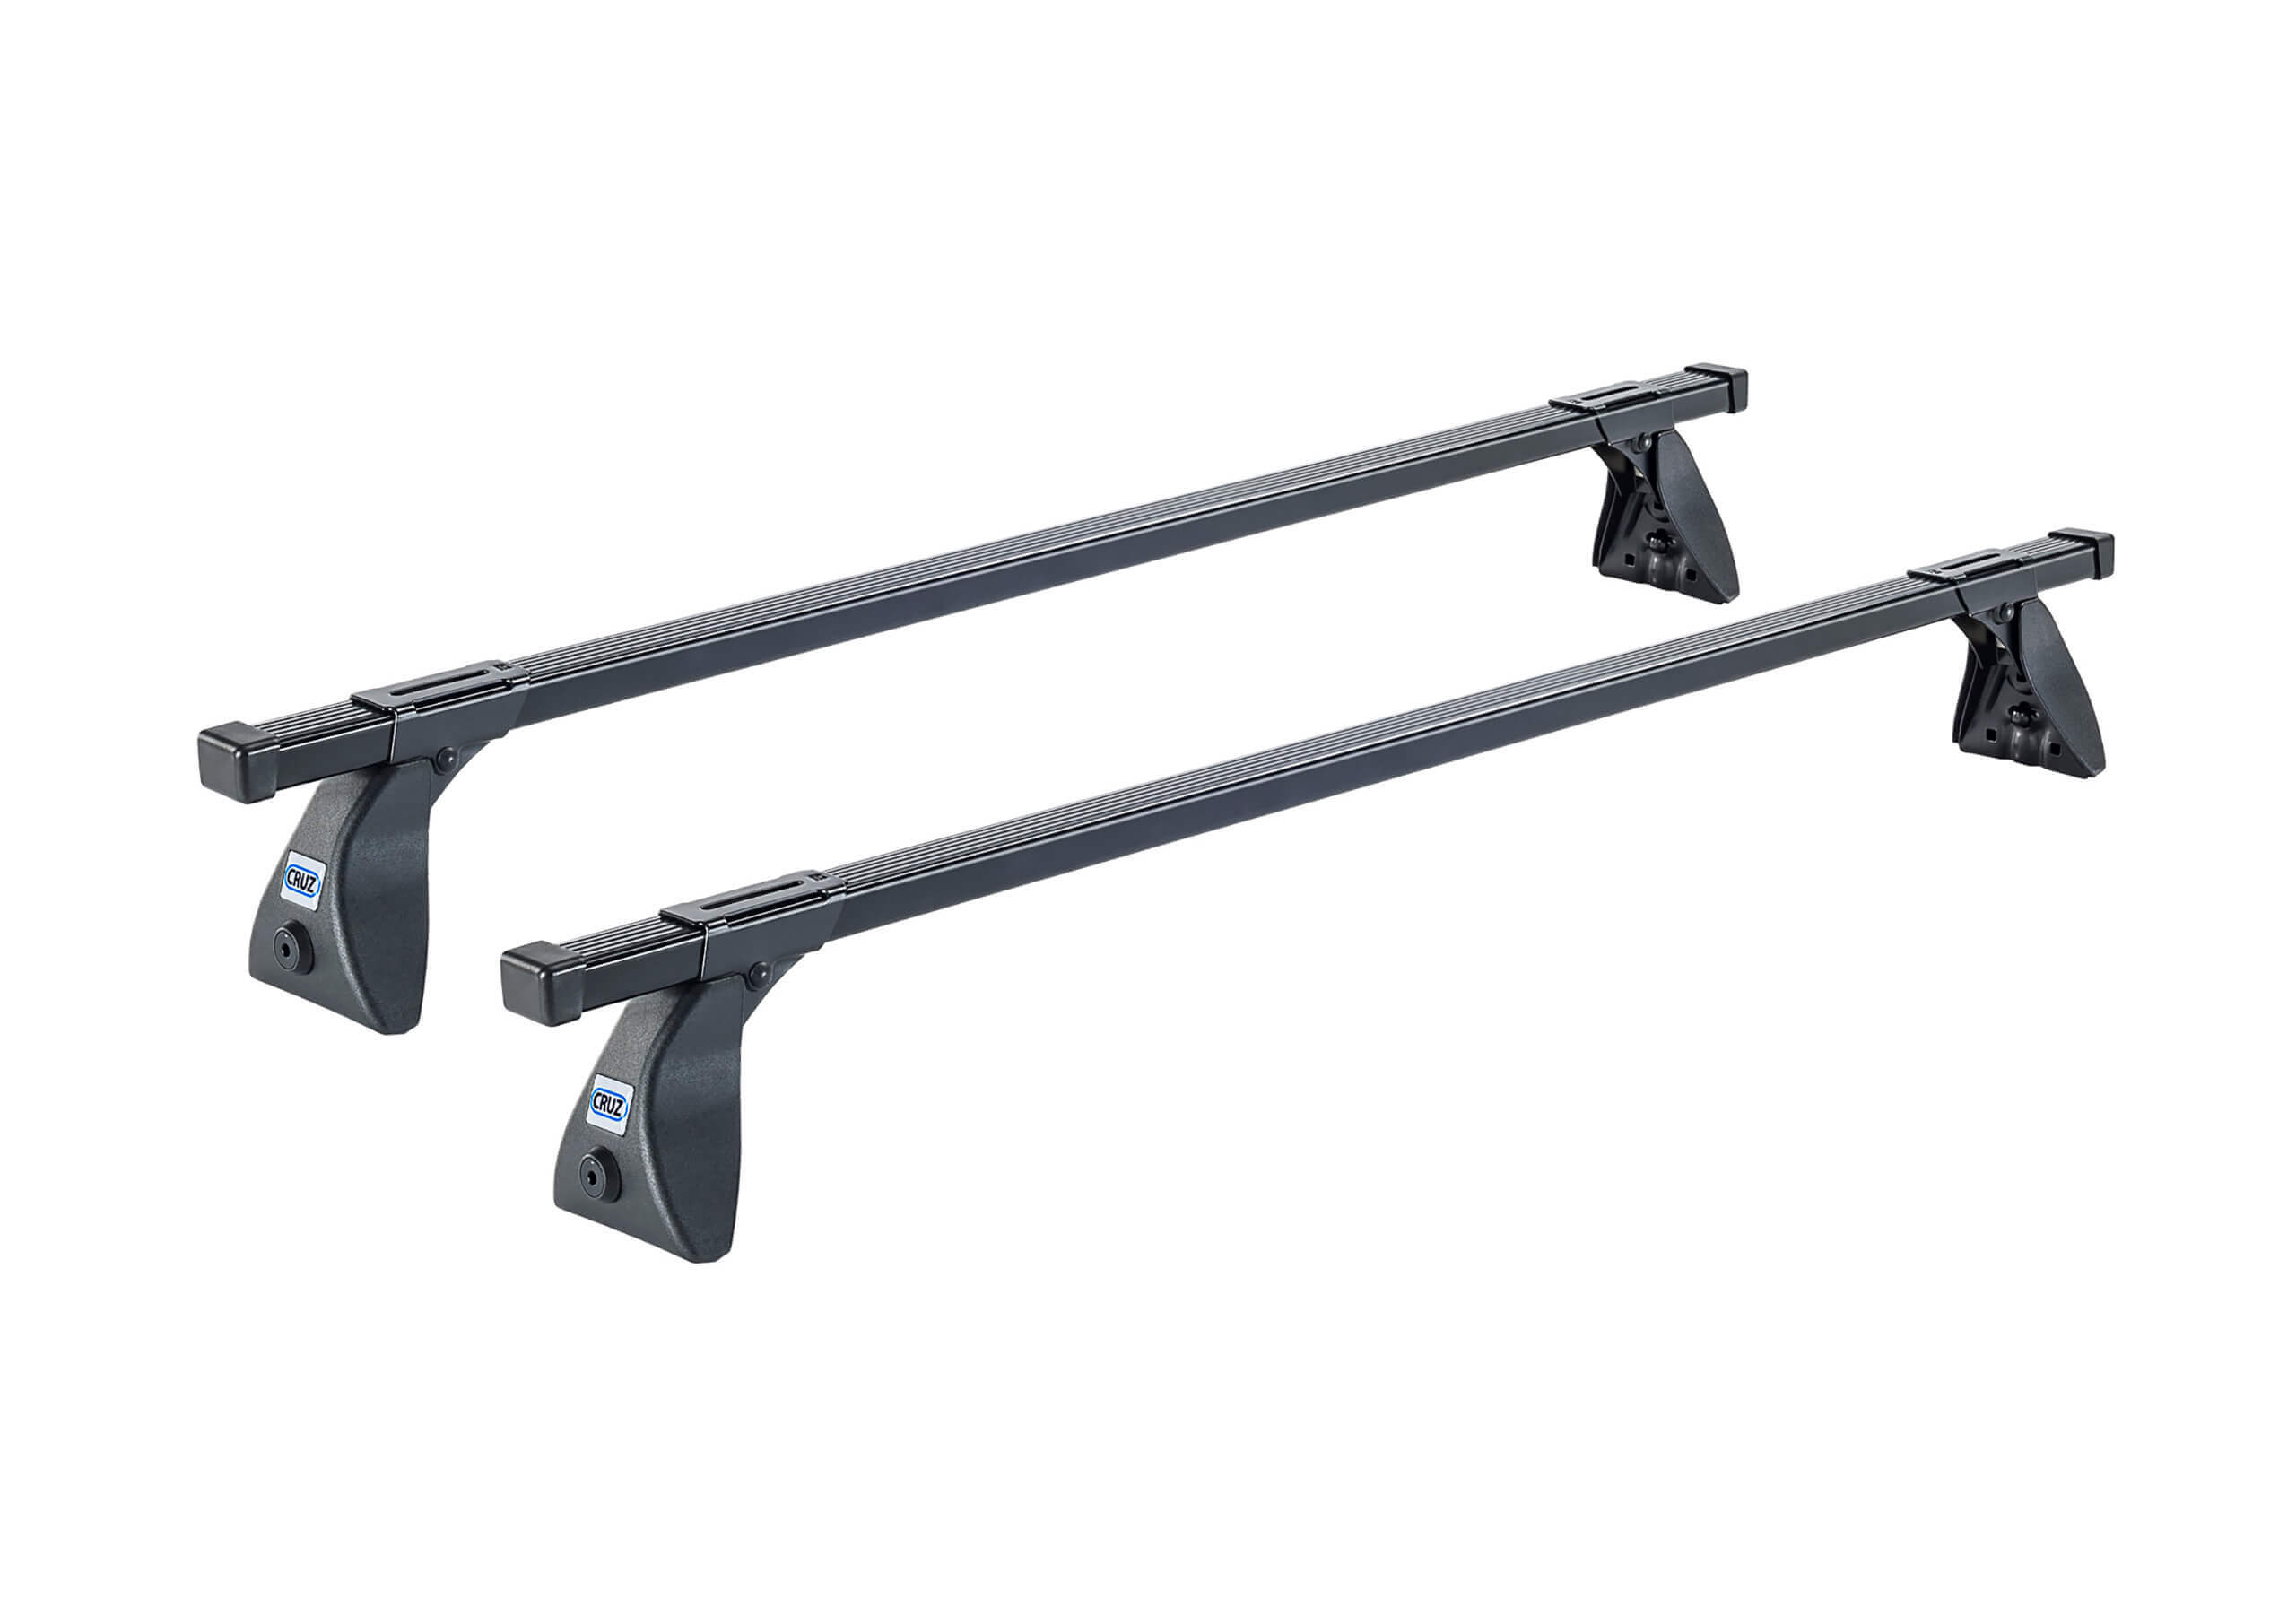 BMW 1 series coupe (2007 to 2015):CRUZ 115cm OS roof bars with fitting kit 5699